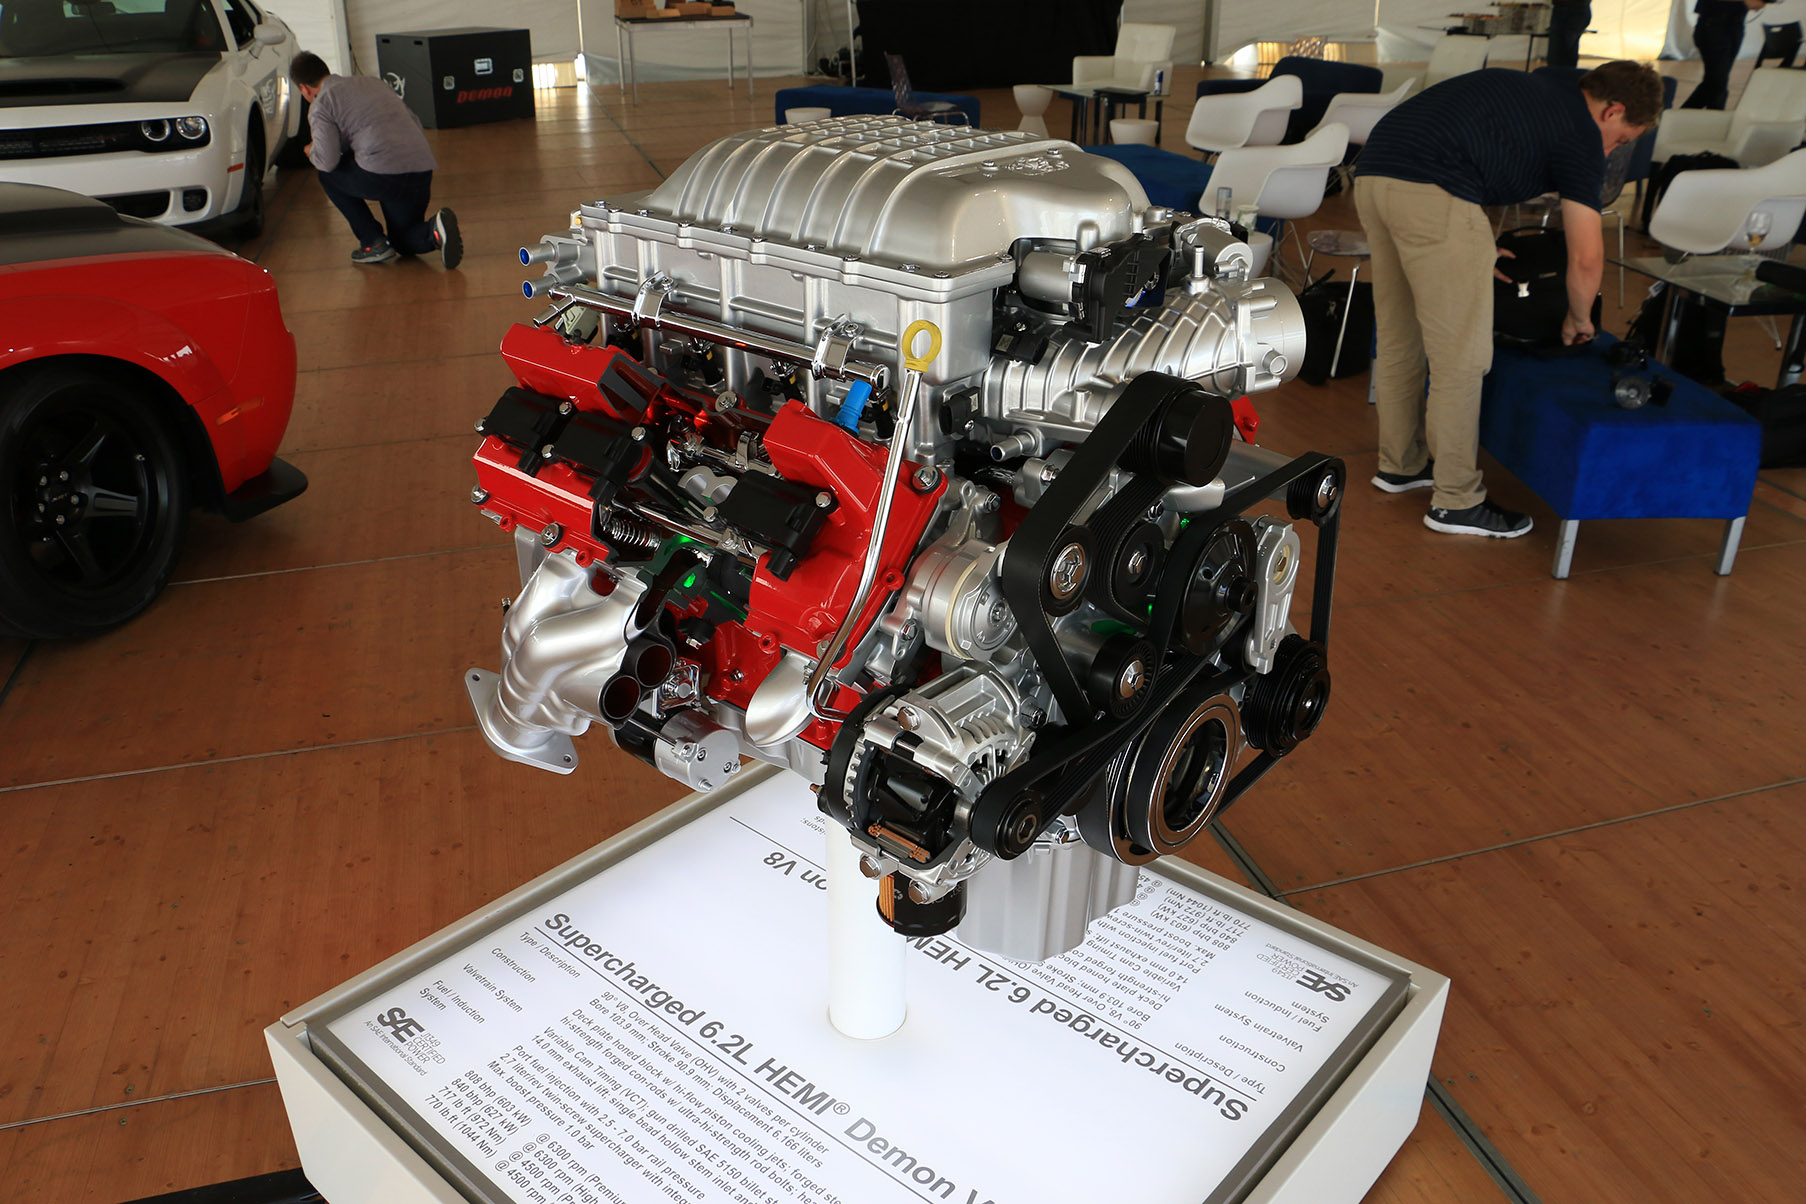 Demon Power: Getting To Know The Most Powerful Production V8 Ever